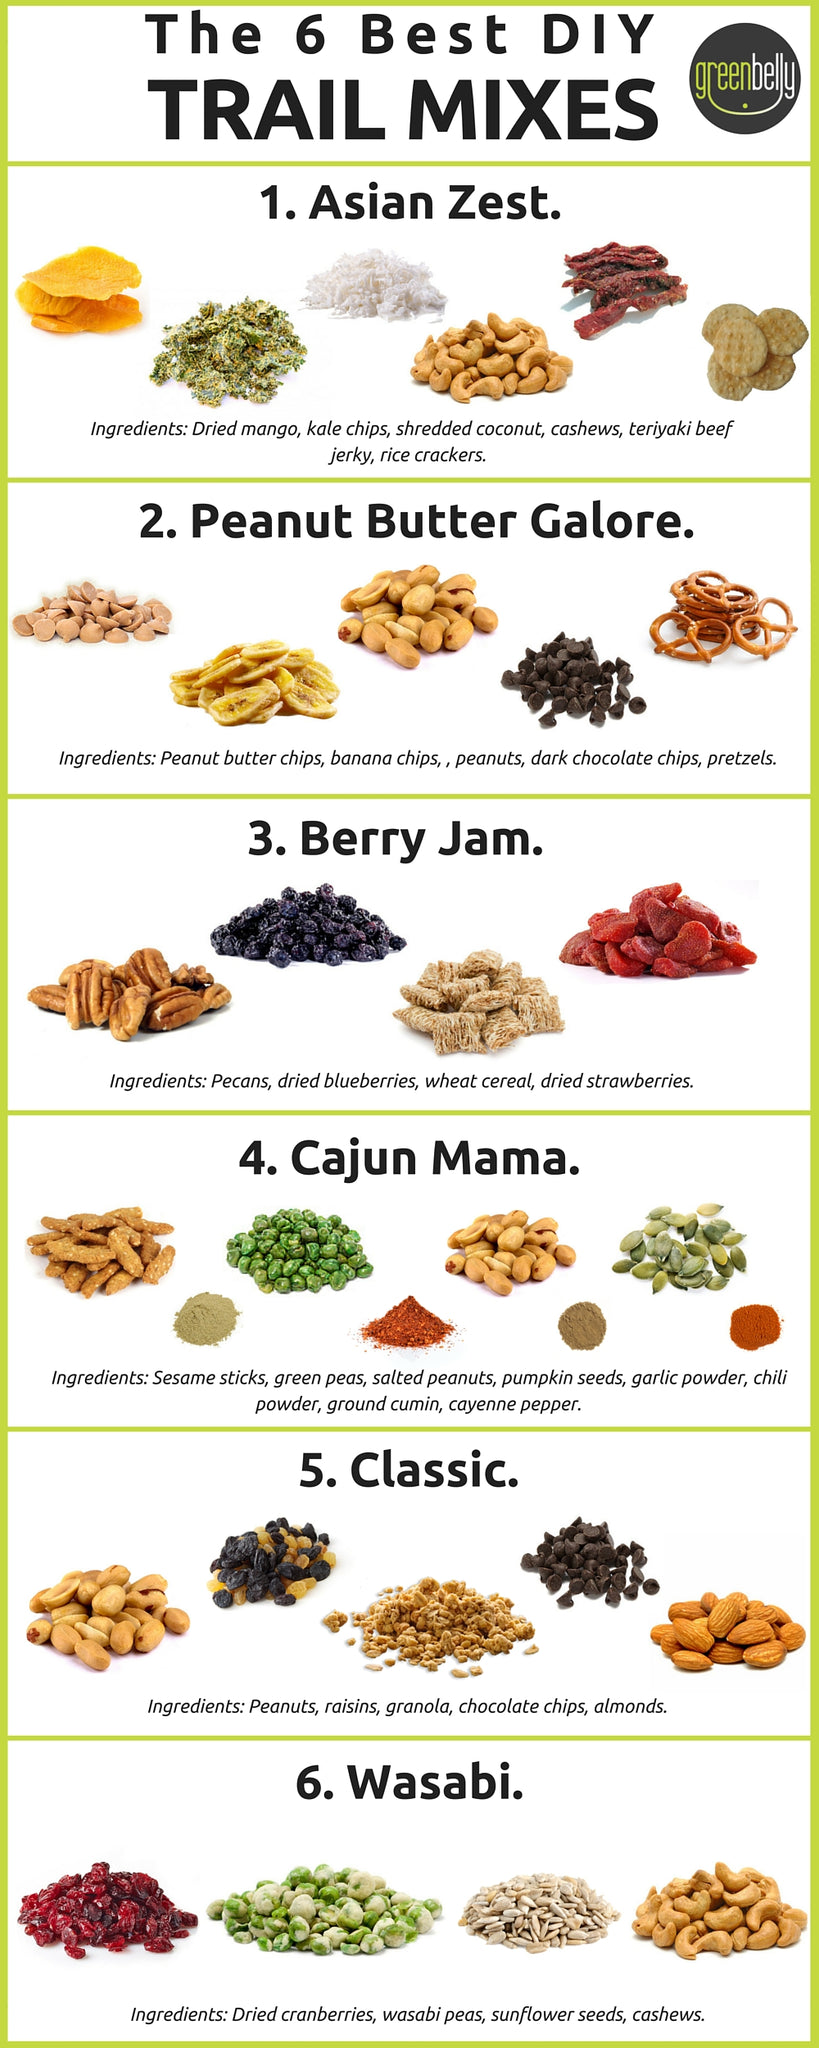 Best Homemade Trail Mix 6 Simple And Yummy Diy Recipes